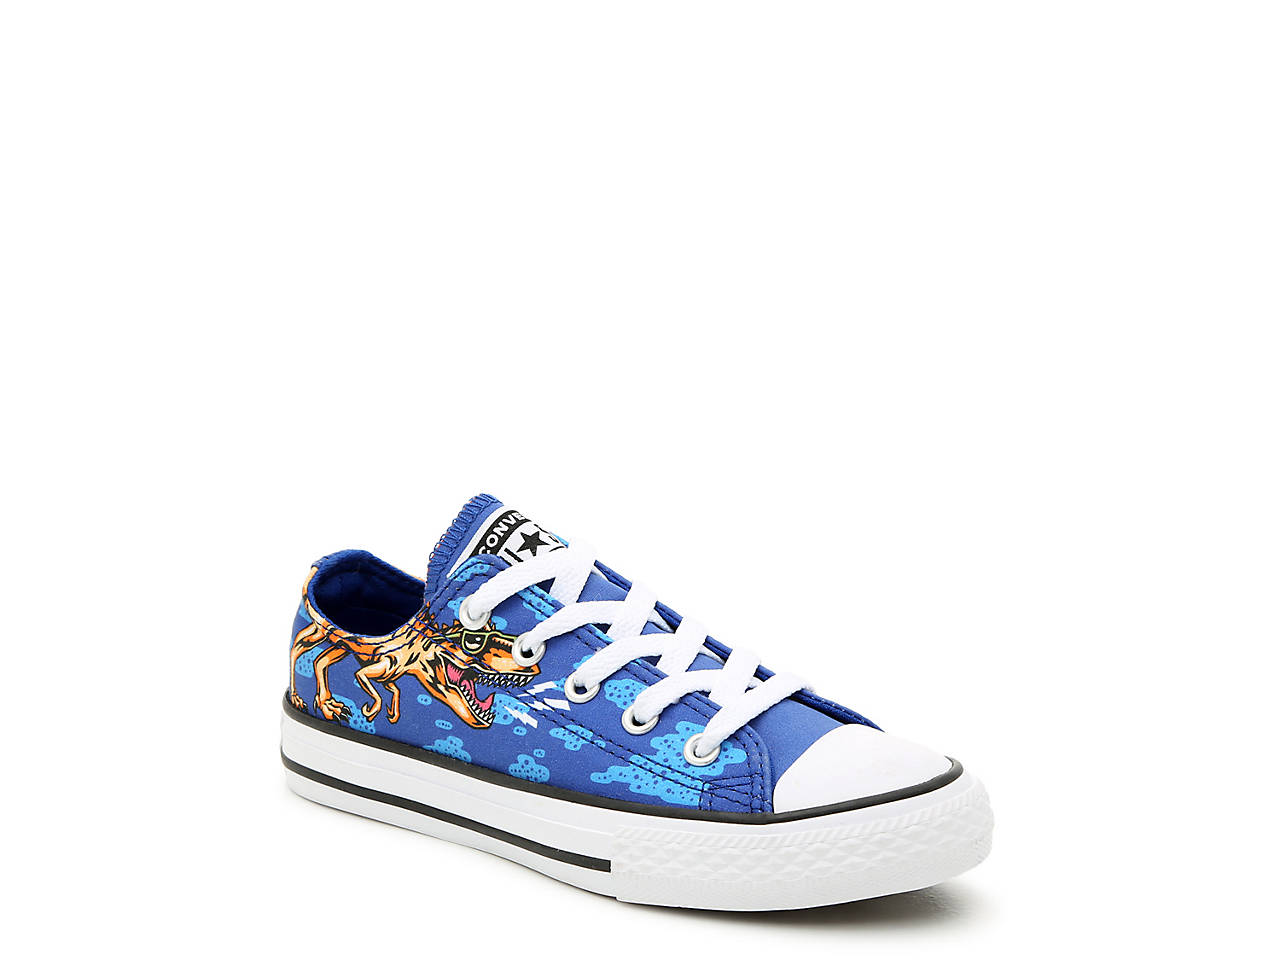 5e1e0b204464 Converse Chuck Taylor All Star Dino Party Toddler   Youth Sneaker ...